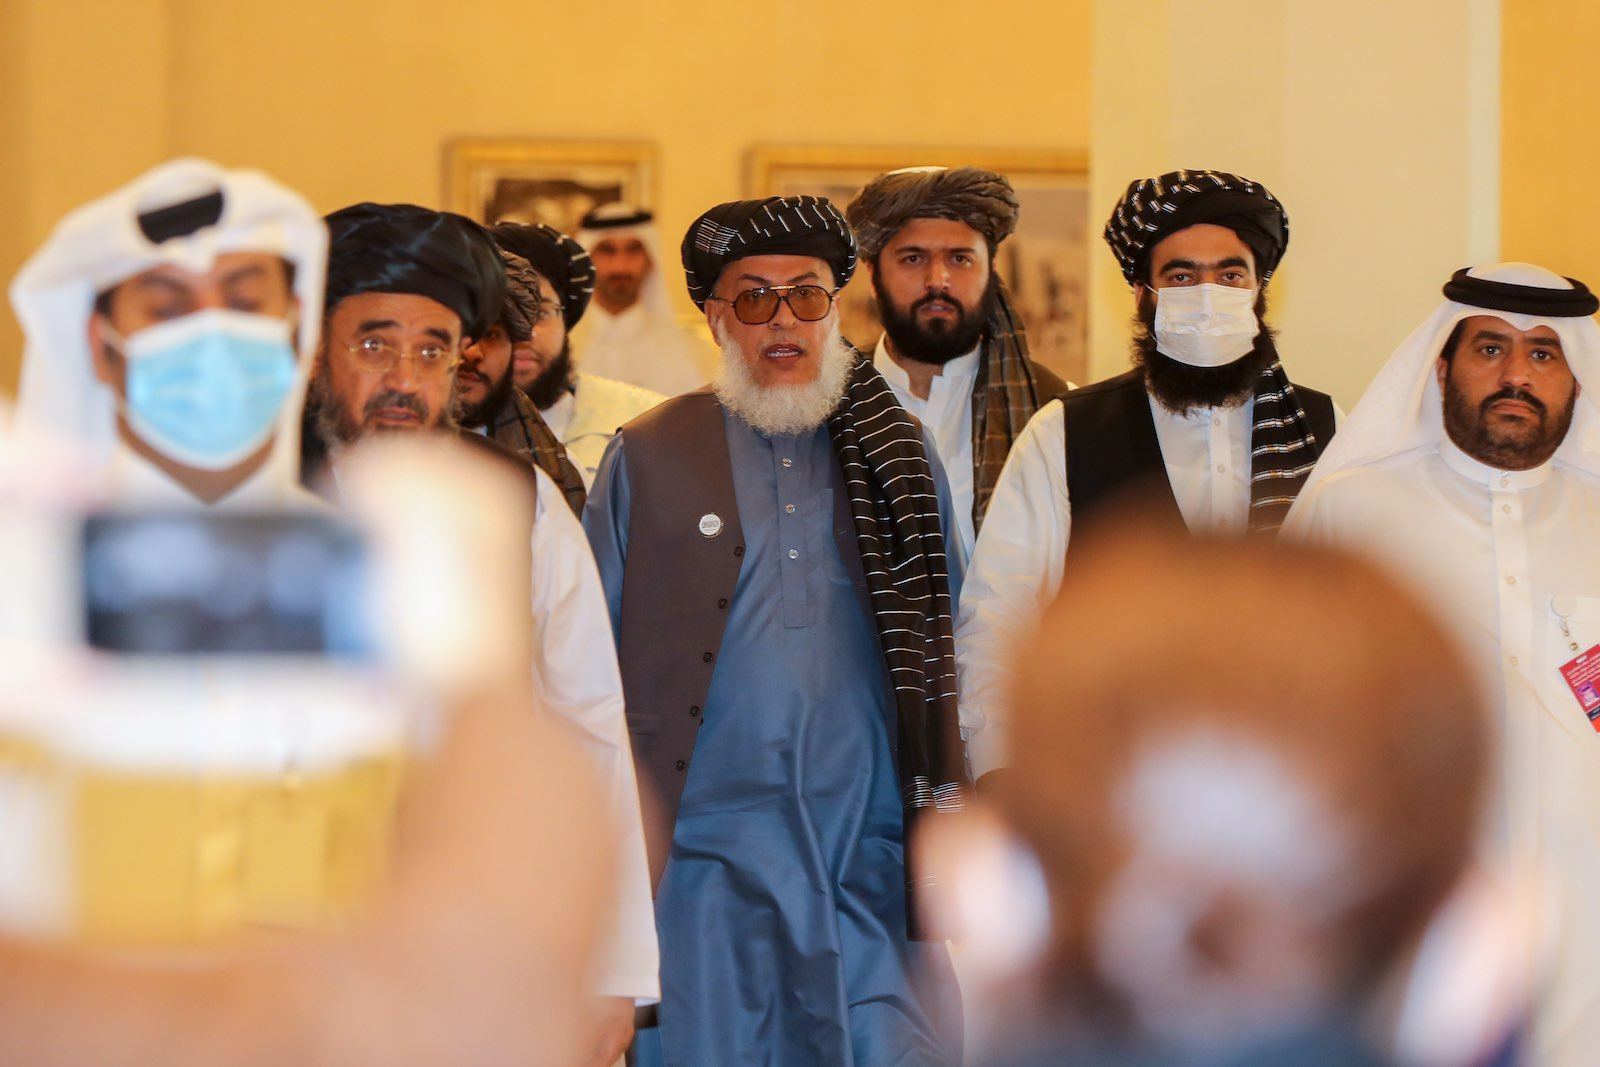 Taliban negotiator Mohammad Abbas Stanekzai arrives for intra-Afghan talks in Doha, Qatar, 12 September 2020 (Karim Jaafar/AFP via Getty Images)